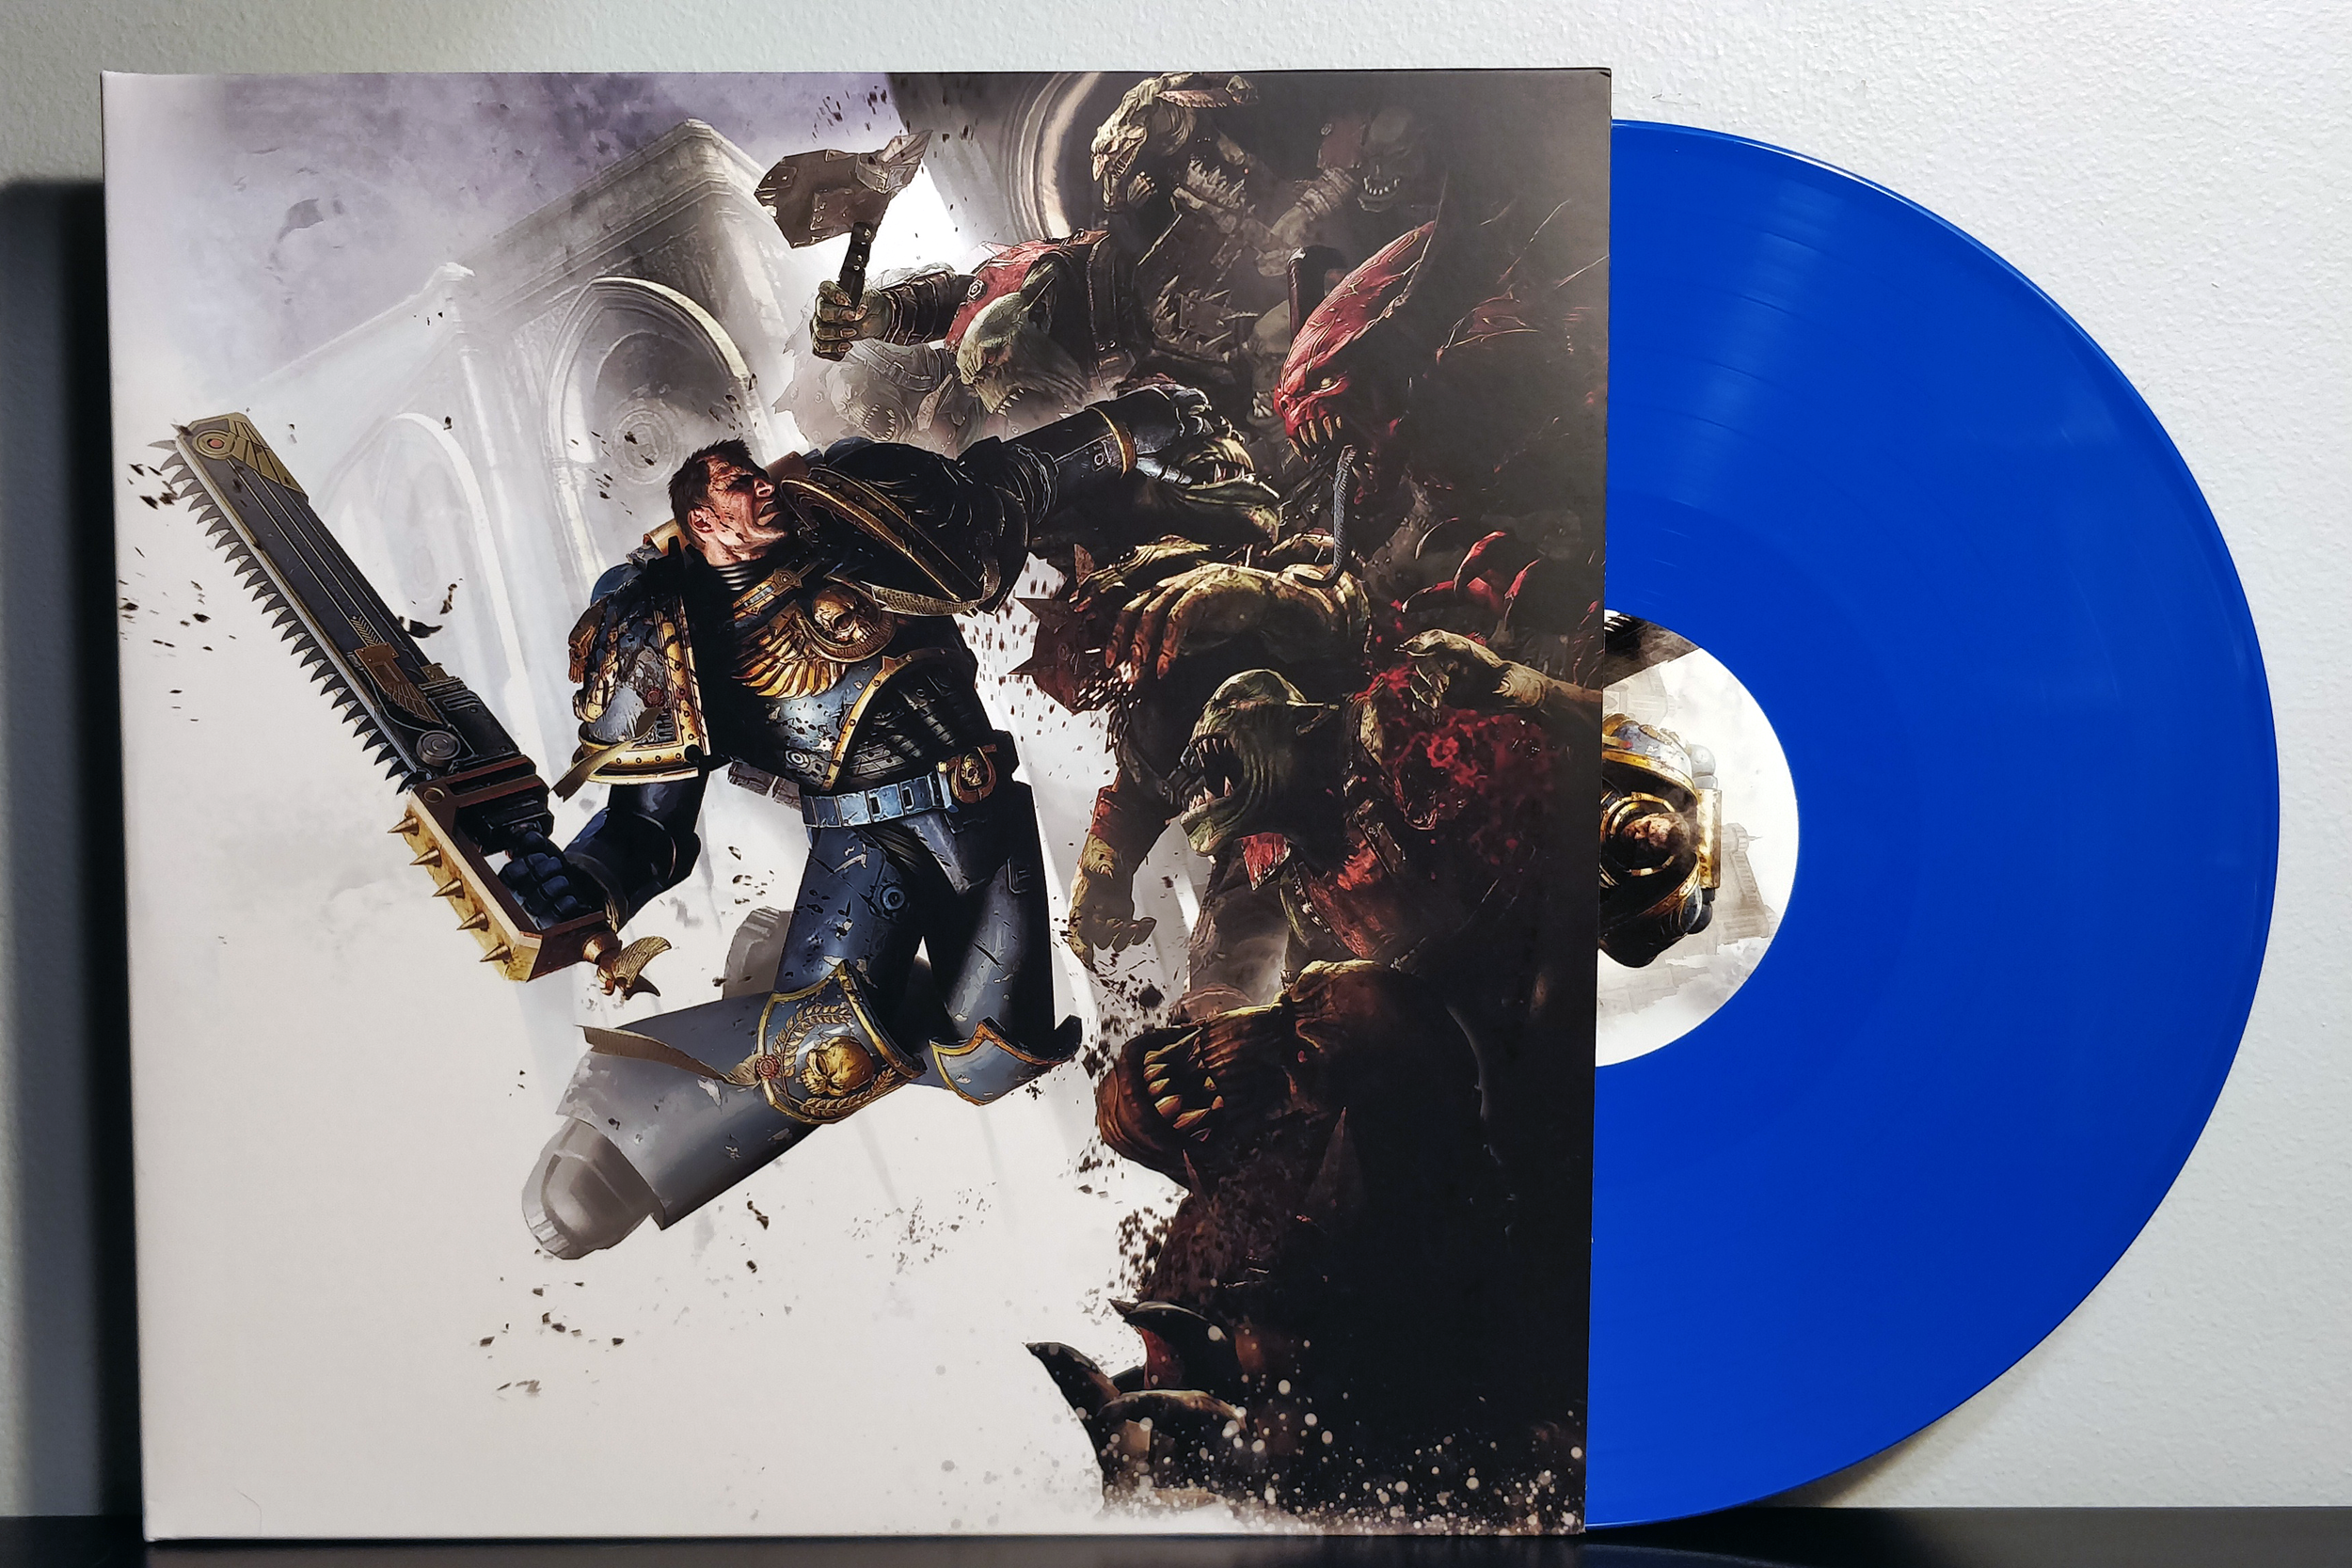 Warhammer 40,000: Space Marine by Cris Velasco & Sascha Dikiciyan pressed on blue and white vinyl by Laced Records